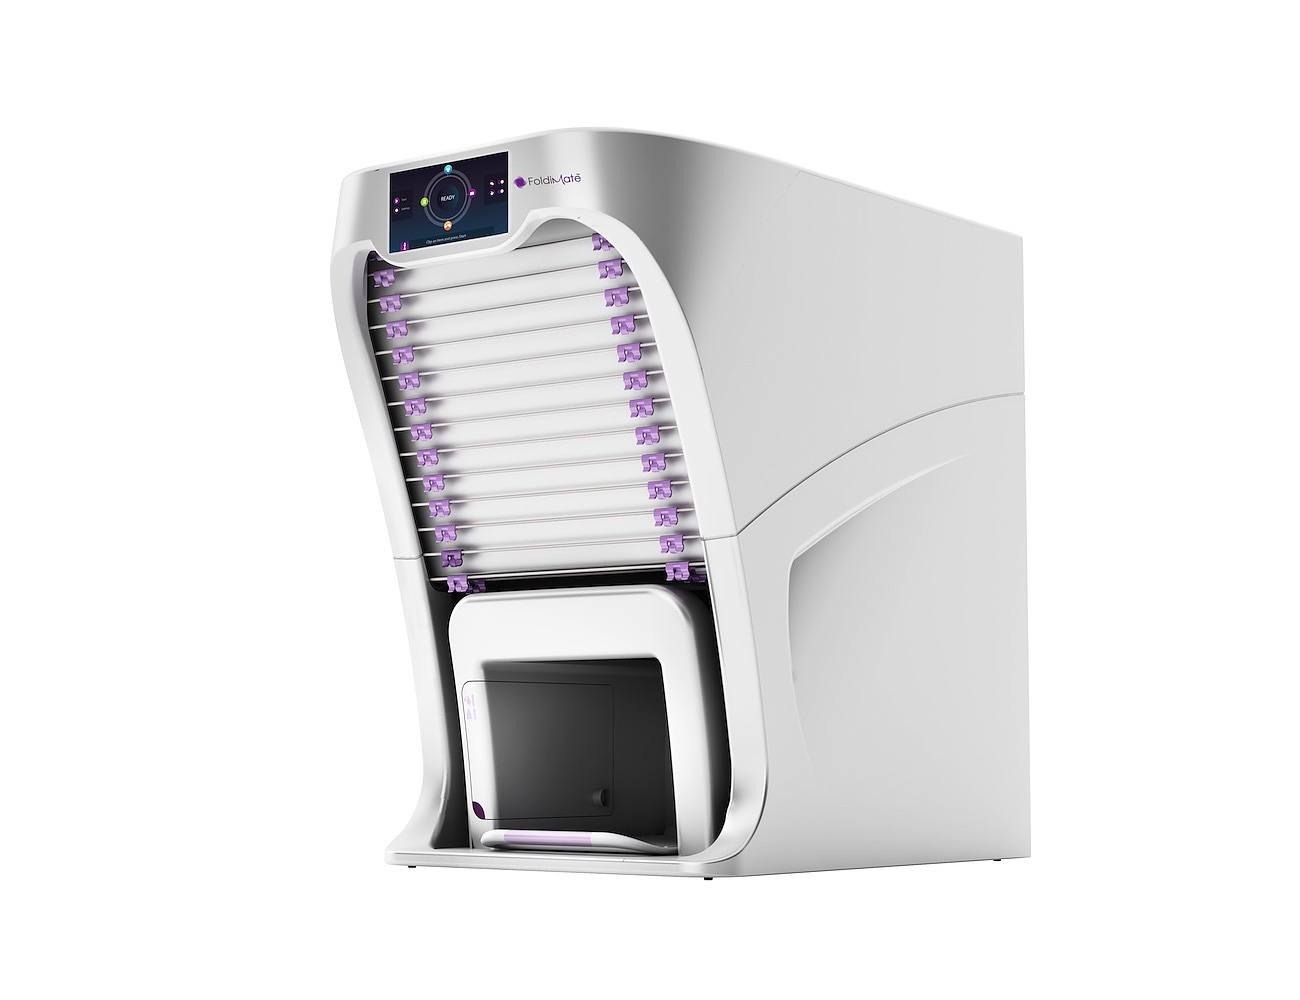 FoldiMate Laundry Folding Machine